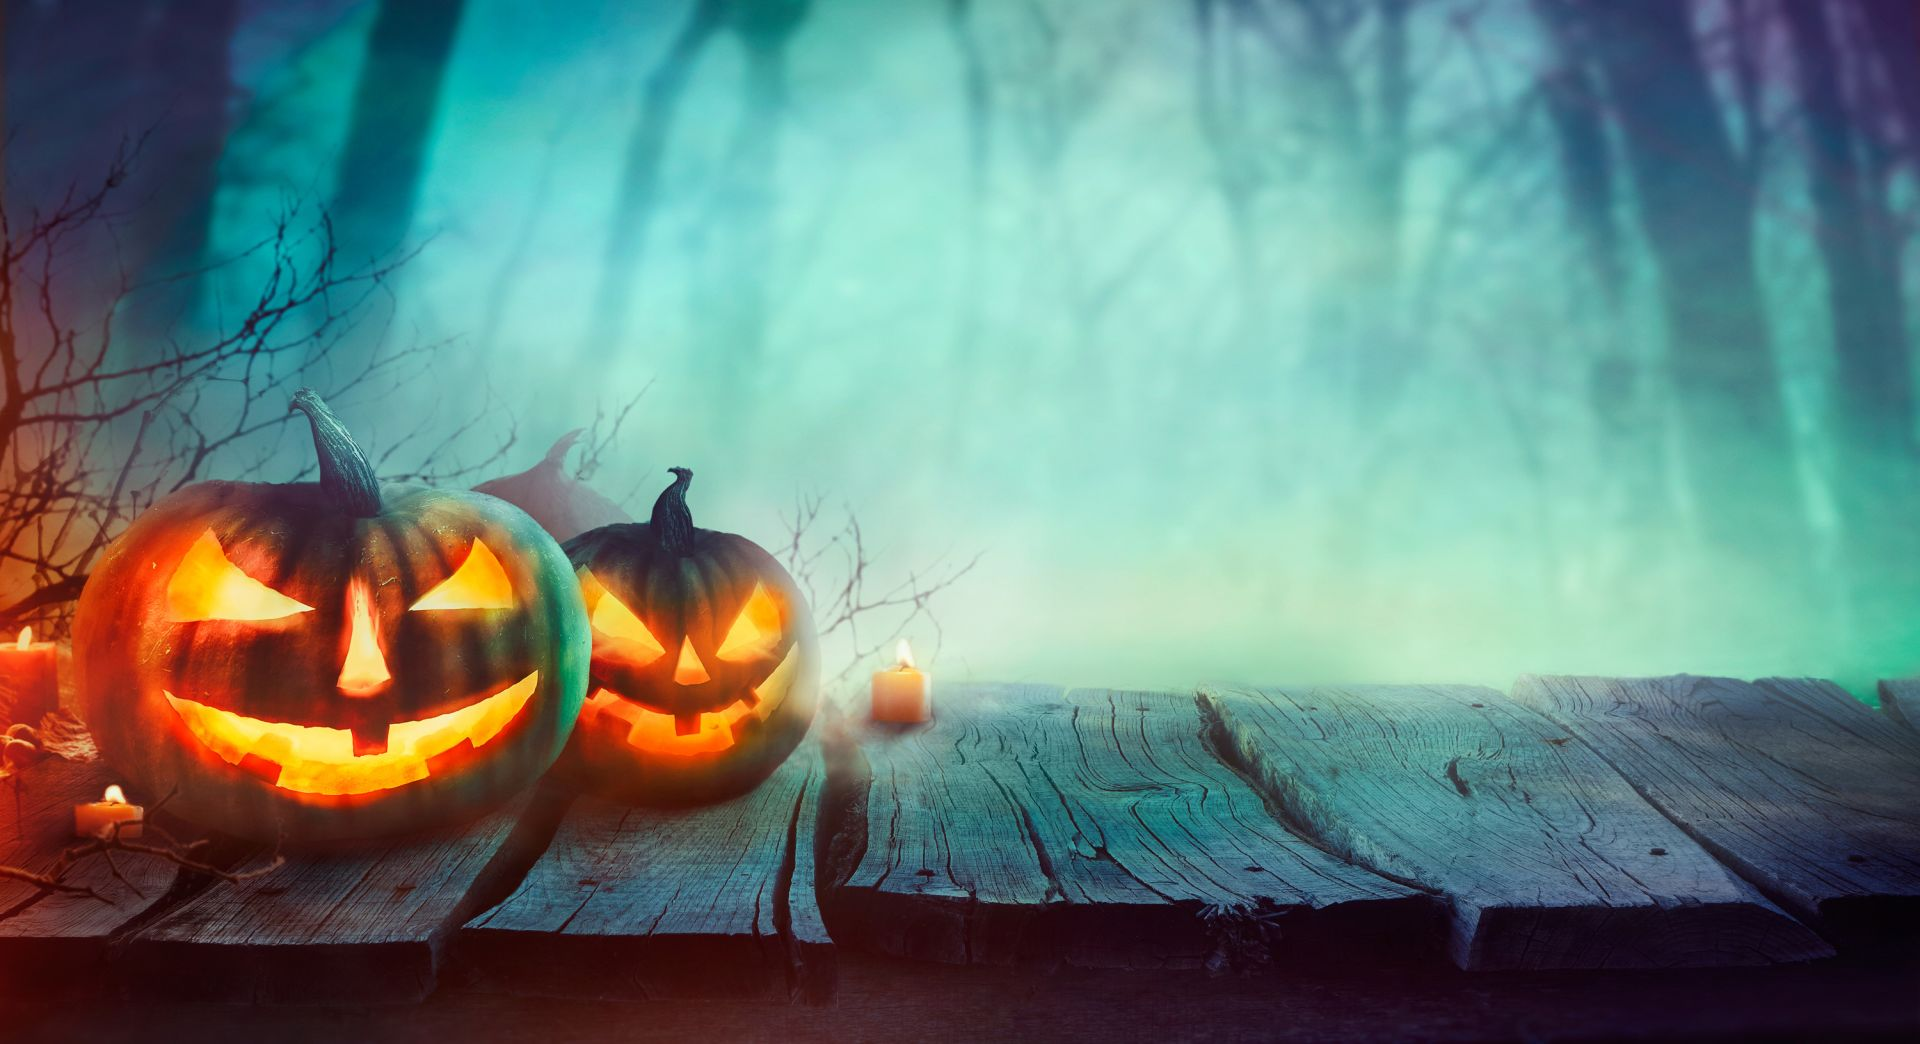 October Events in the Greater Omaha Area